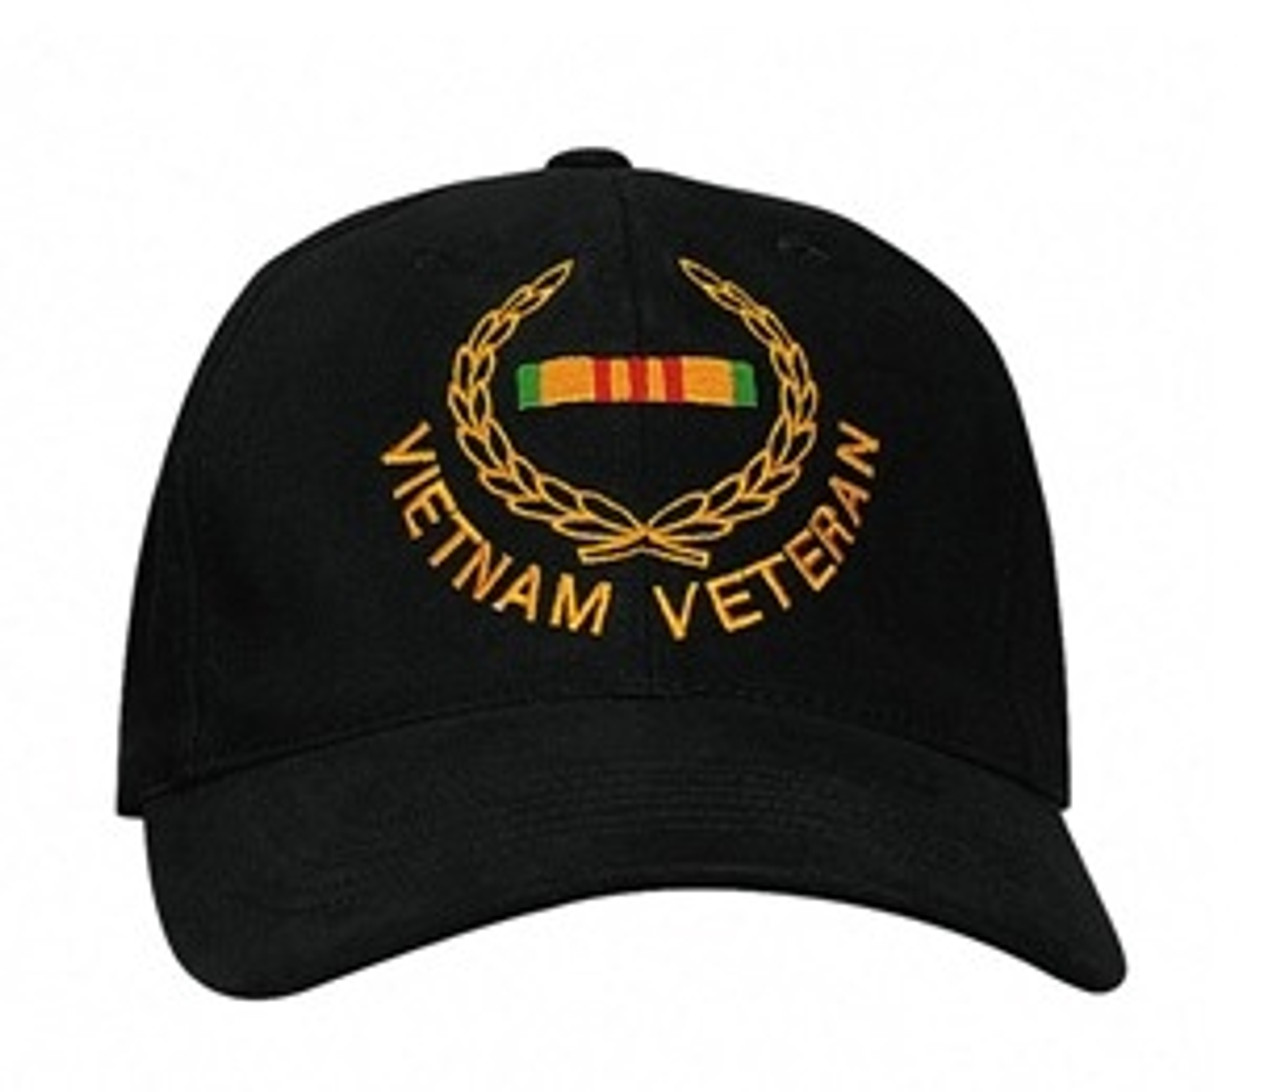 Vietnam Veteran Supreme Low Profile Insignia Cap from Hessen Tactical